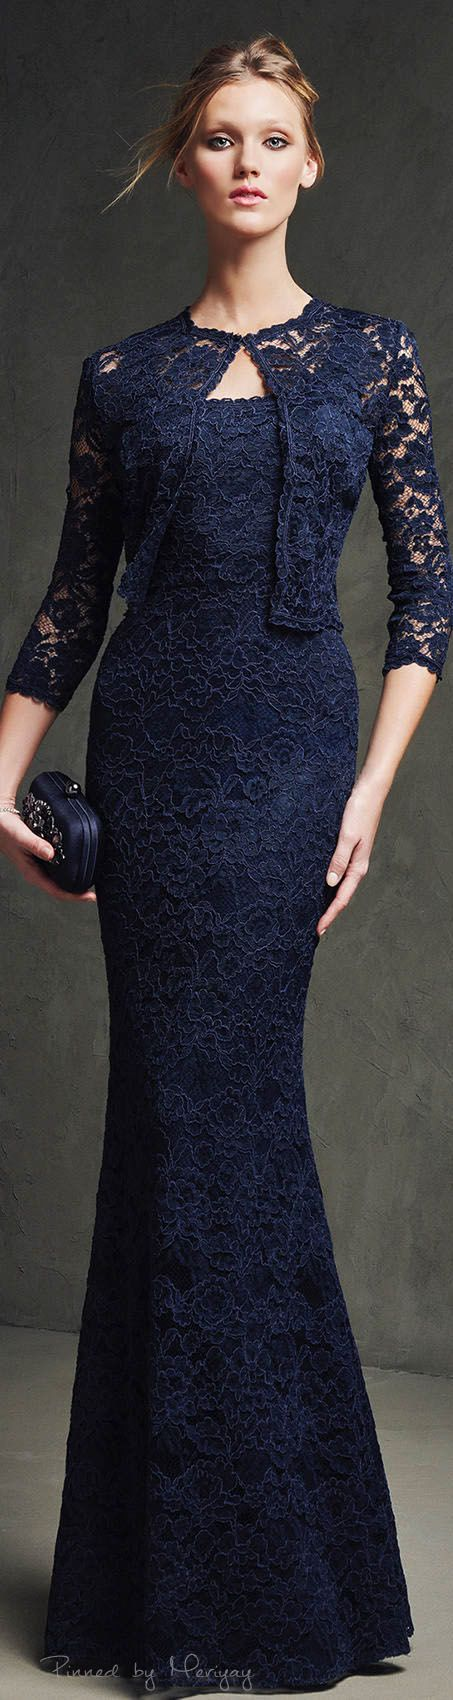 Blue lace Mother of the bride 2pc jacket and dress. Pretty lace 2 piece dress for the mother of the bride. We can make an evening gown like this for you. Custom designs & replicas available. https://www.dariuscordell.com/featured/custom-made-mother-of-the-bride-evening-dresses/